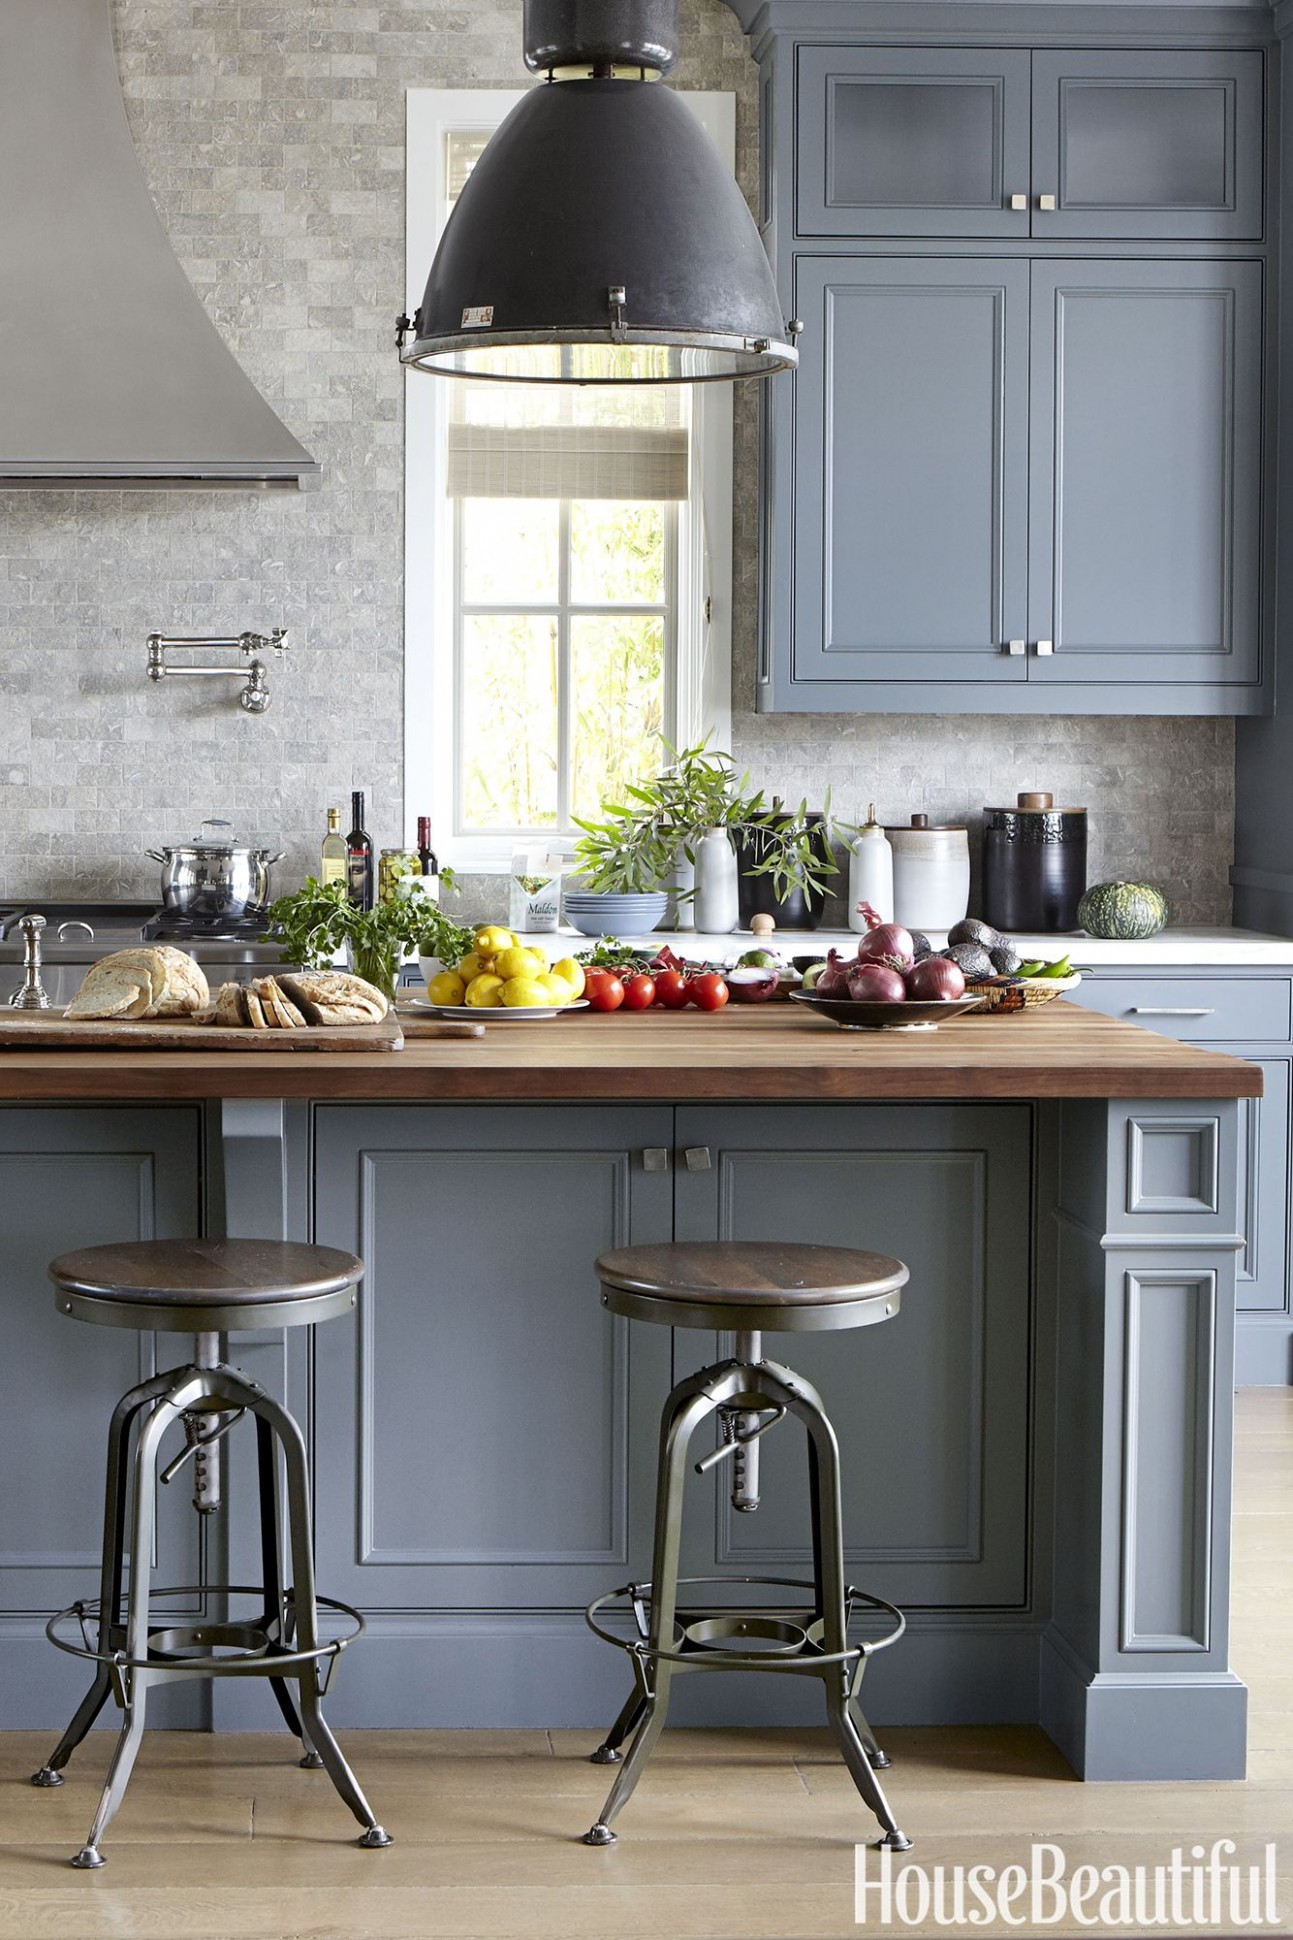 11 Grey Kitchen Ideas - Best Gray Kitchen Designs and Inspiration - Beautiful Kitchens With Grey Cabinets